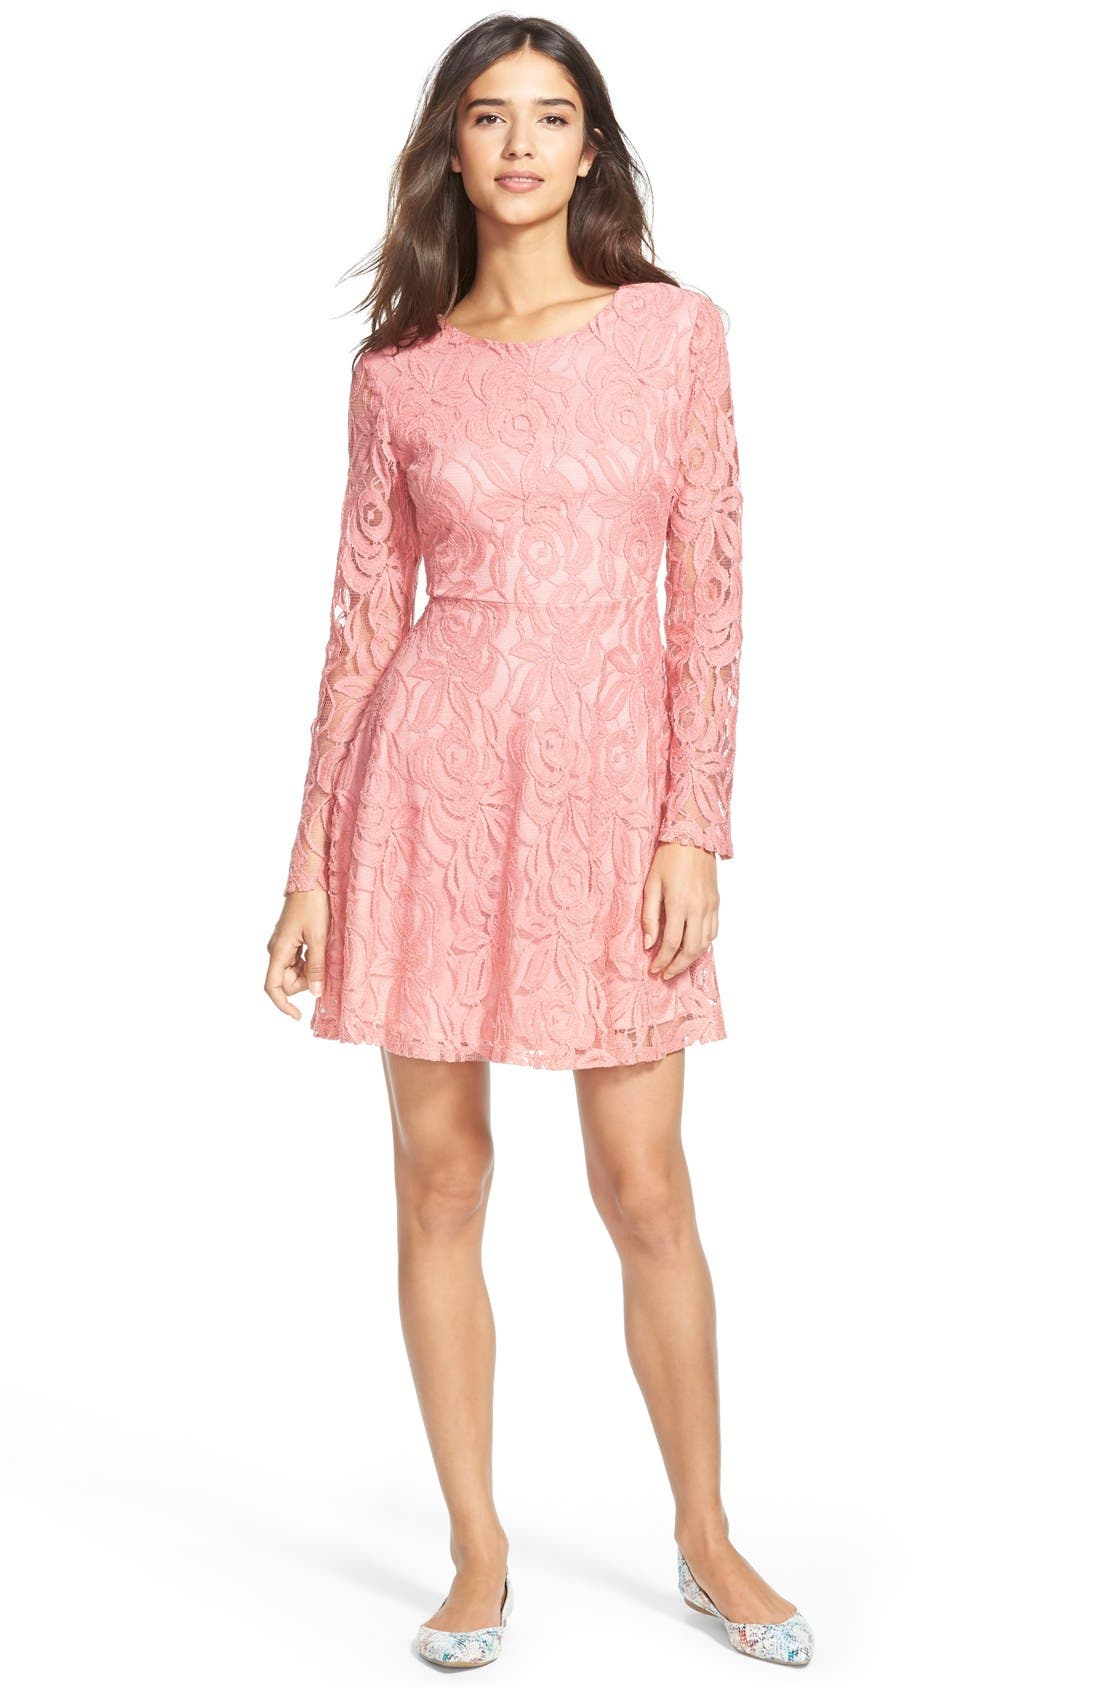 Alternate Image 1 Selected - Painted Threads Floral Lace Skater Dress (Juniors)